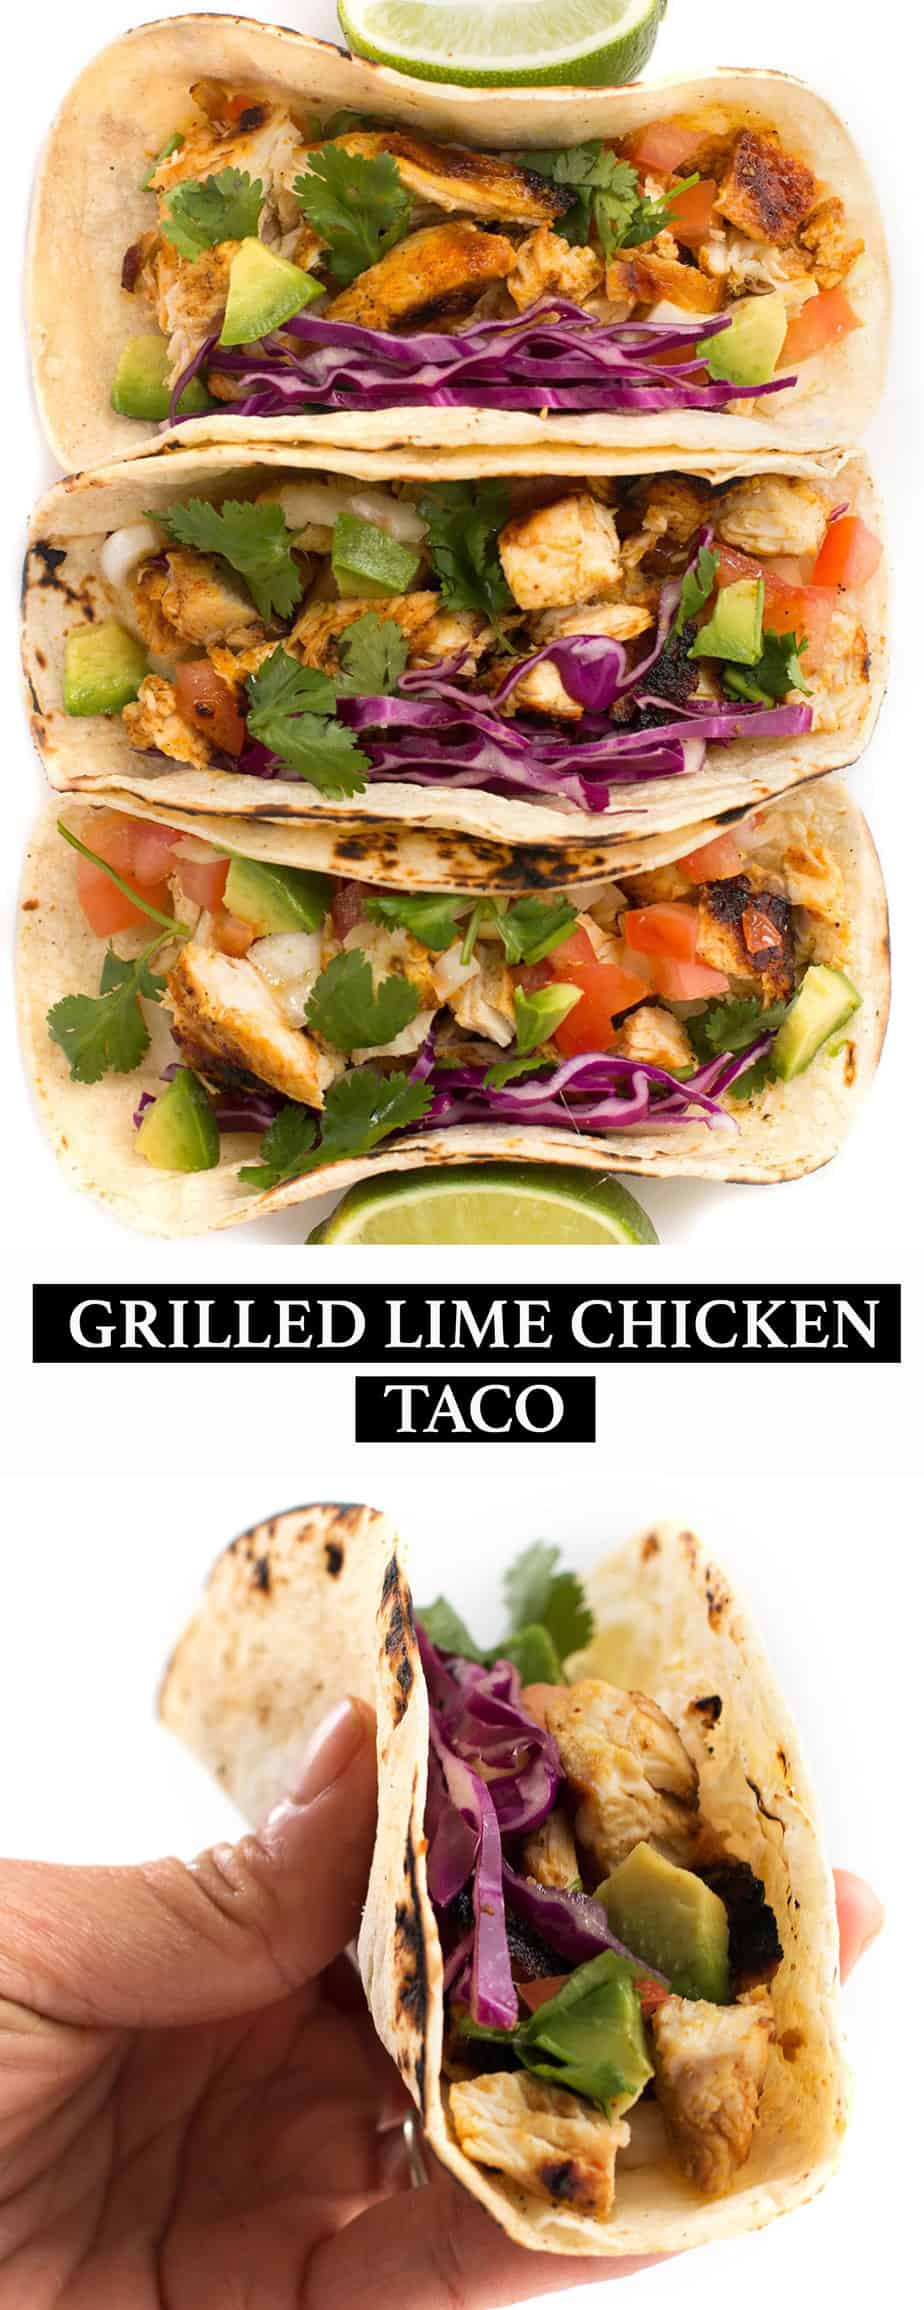 GRILLED-LIME-CHICKEN-TACO-PINTEREST